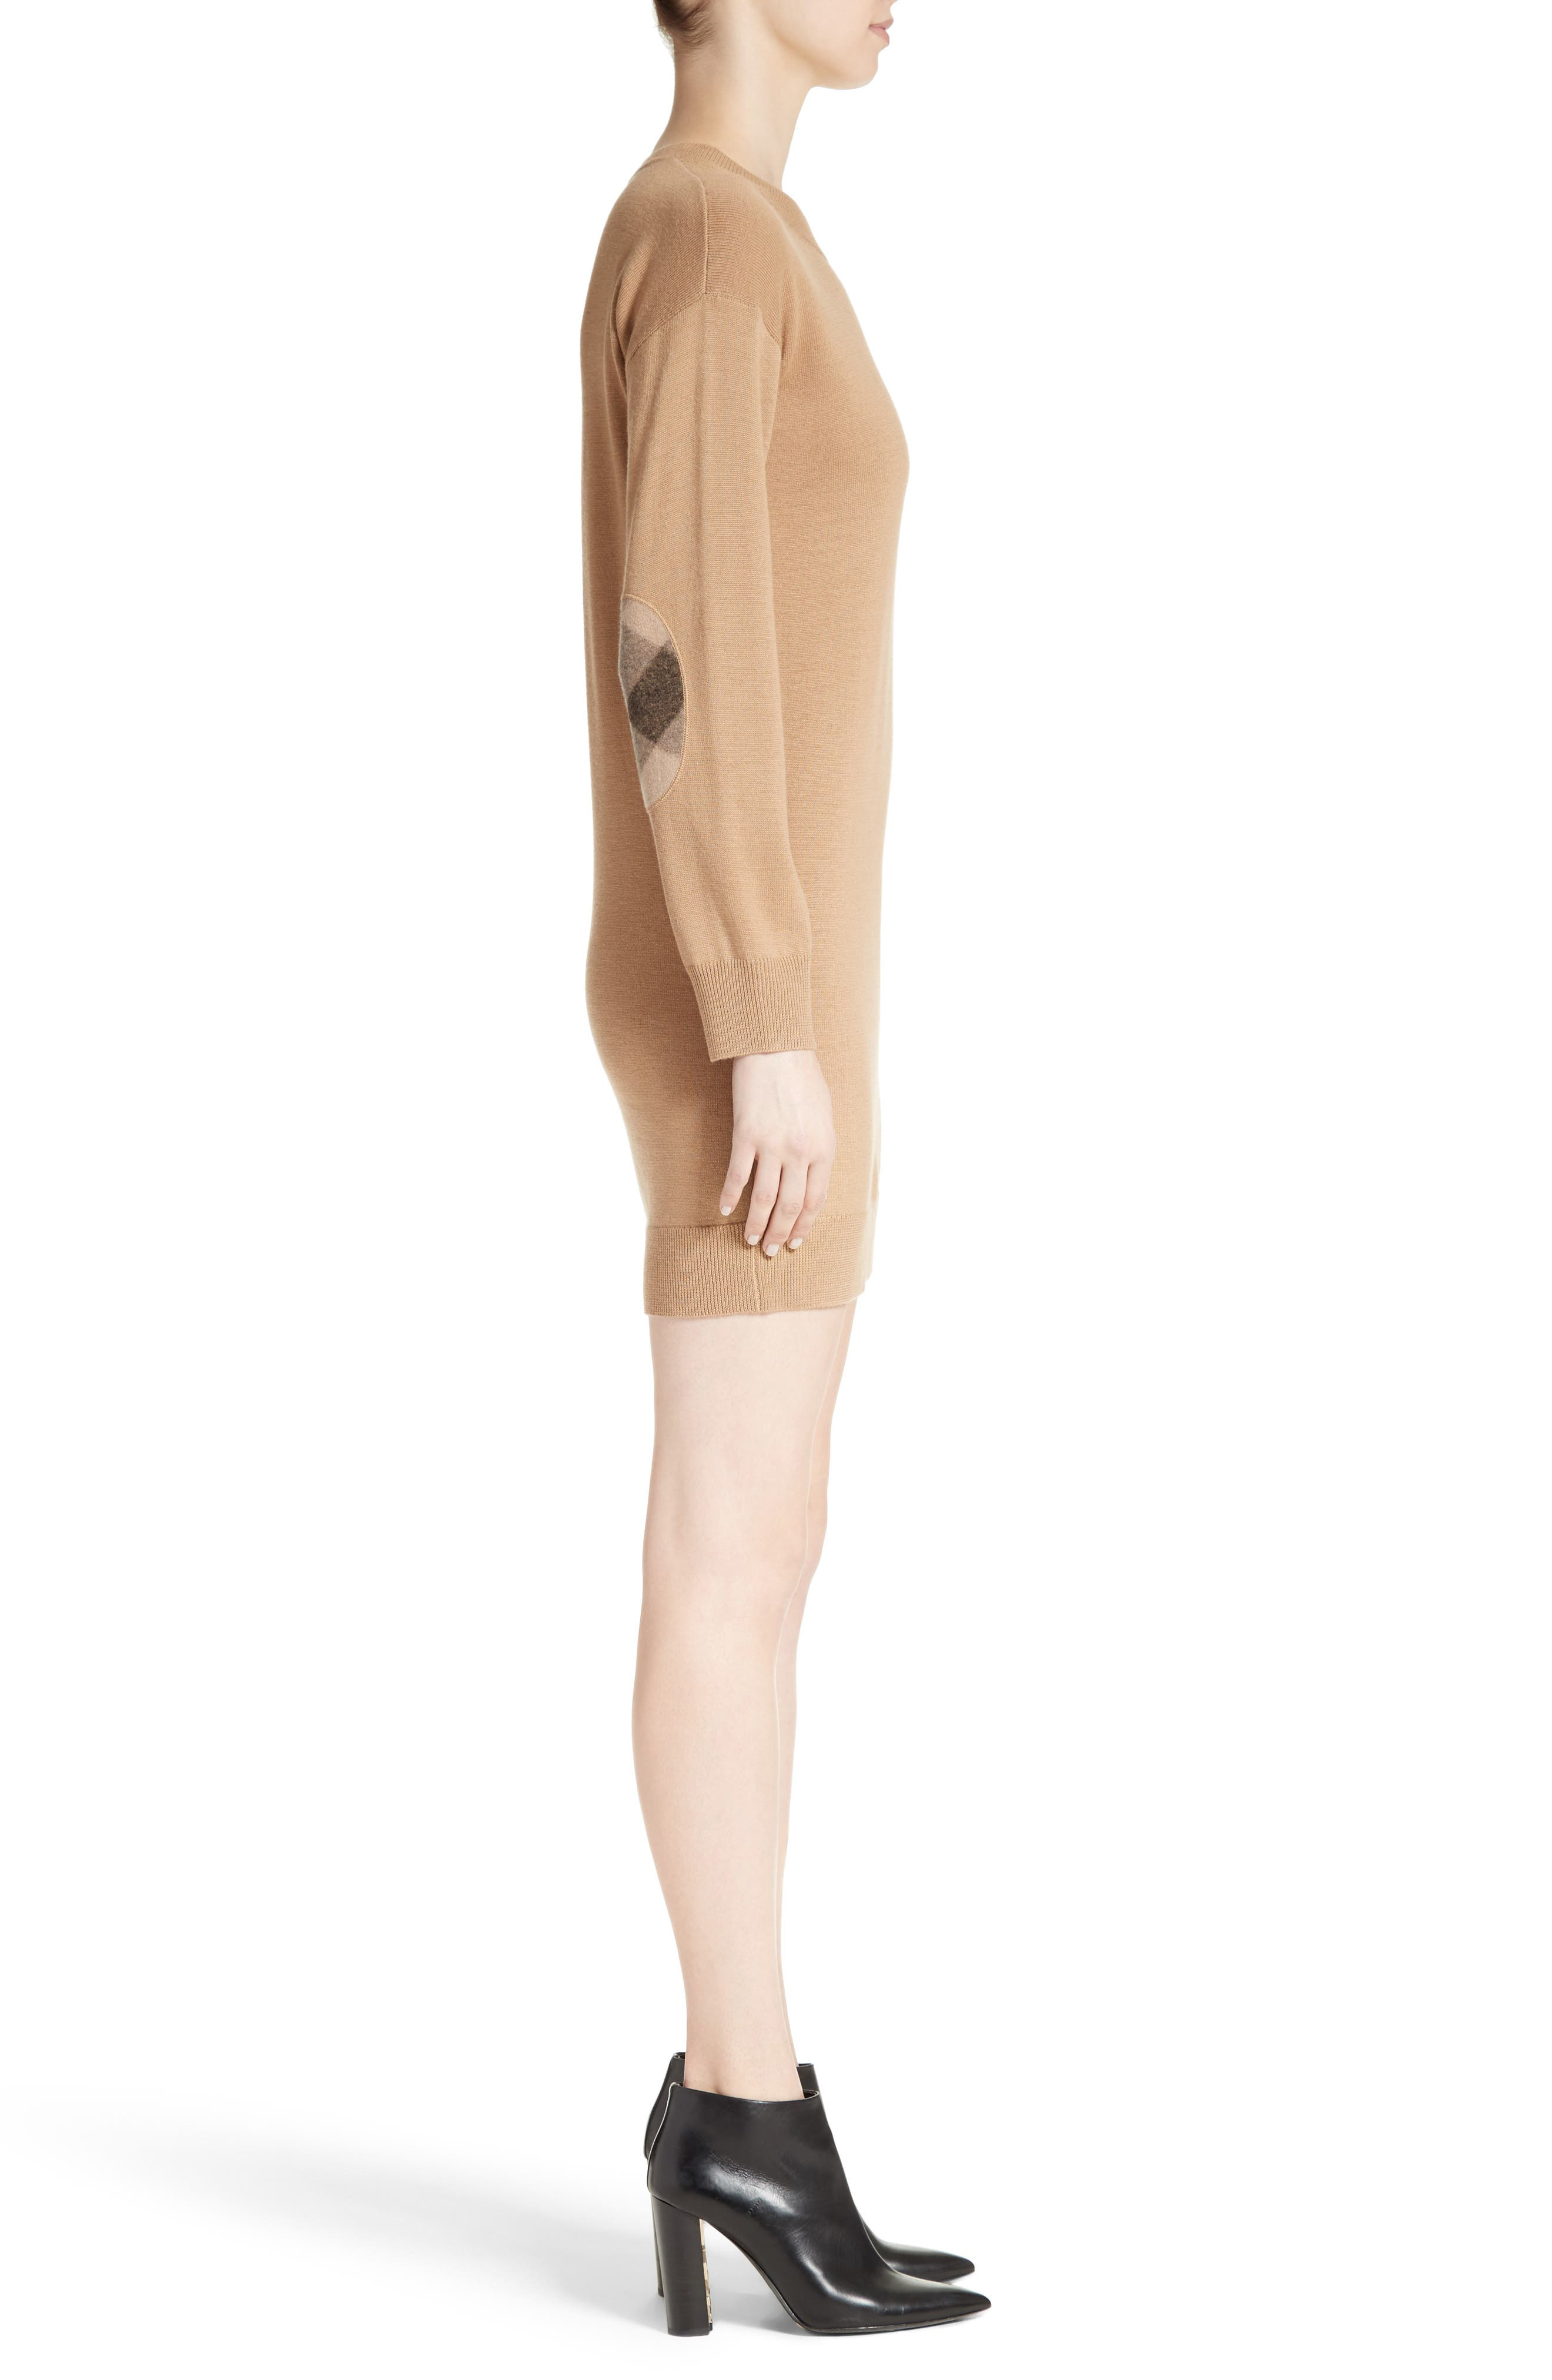 BURBERRY, Alewater Elbow Patch Merino Wool Dress, Alternate thumbnail 4, color, CAMEL